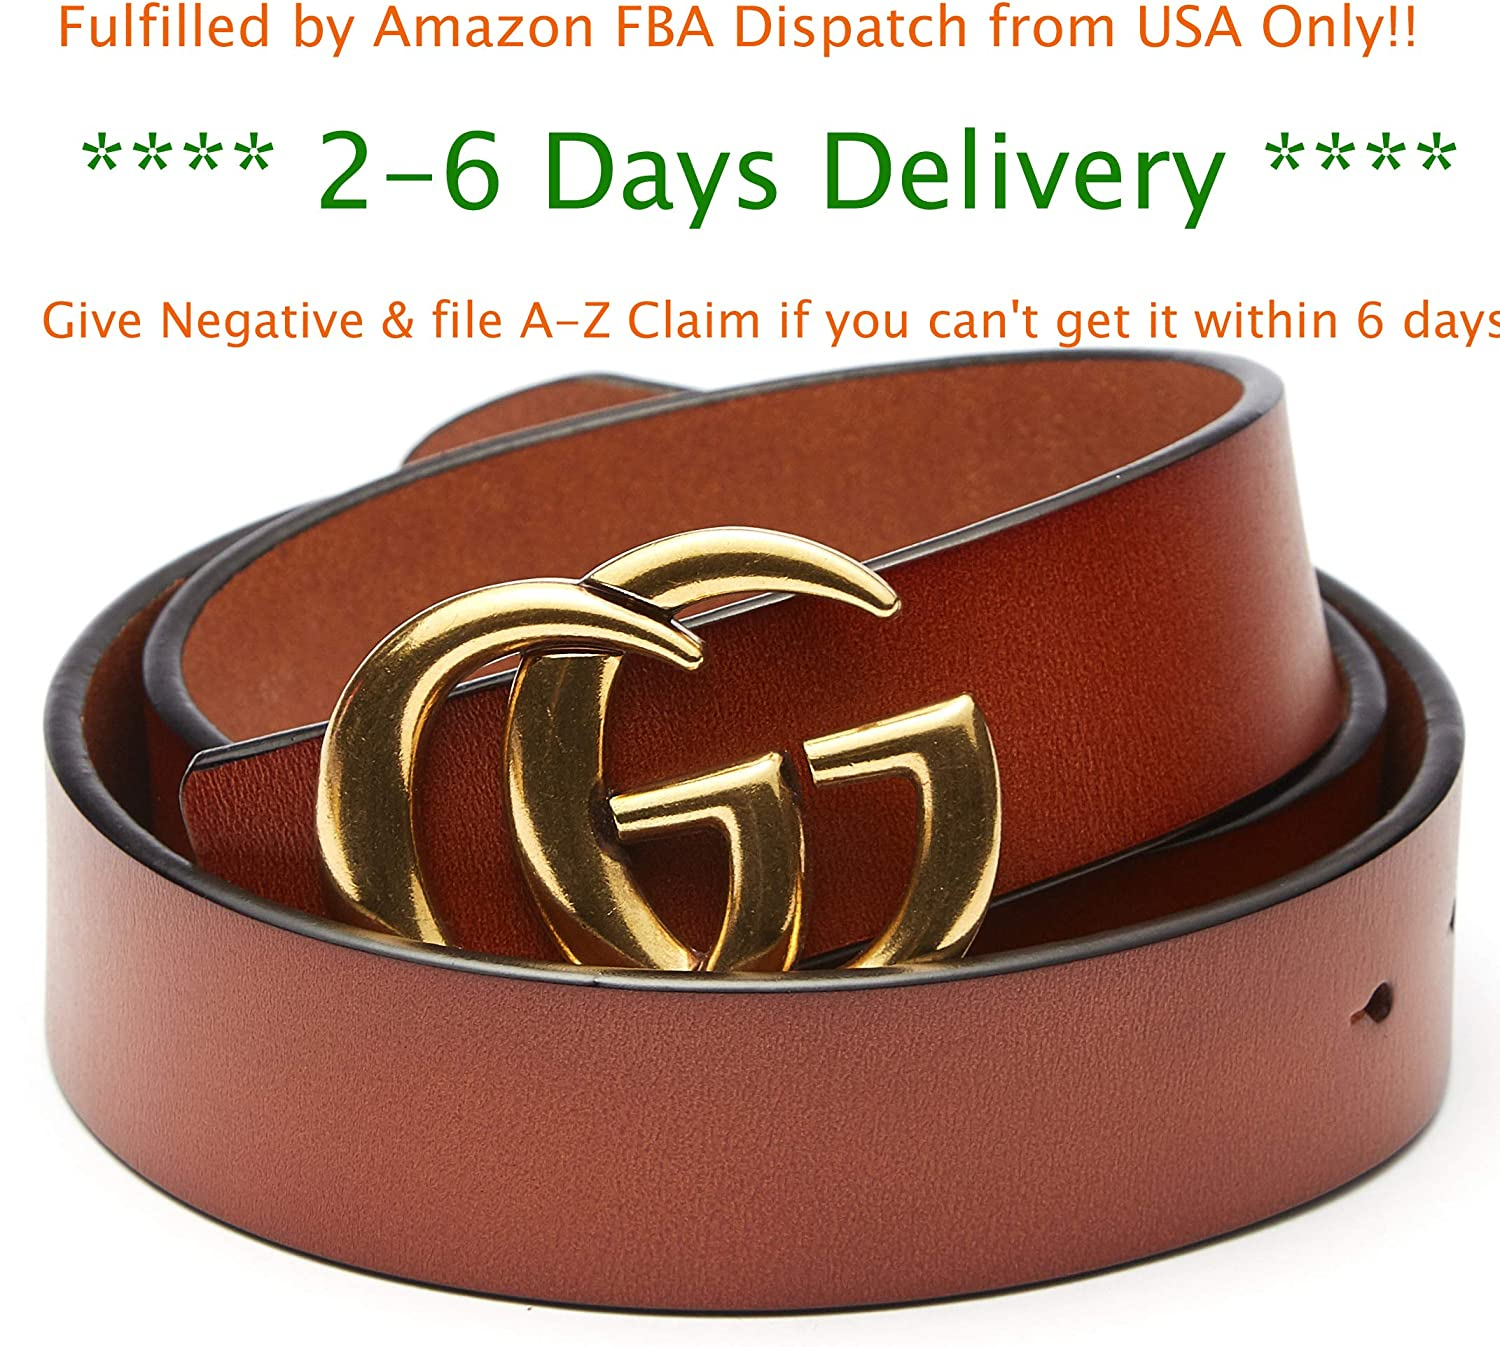 USA Fast Deliver 2-7 Days FBA Guarantee - Luxury Style Gold Buckle Leather Belt for Women Lady - 3.8cm Belt Width